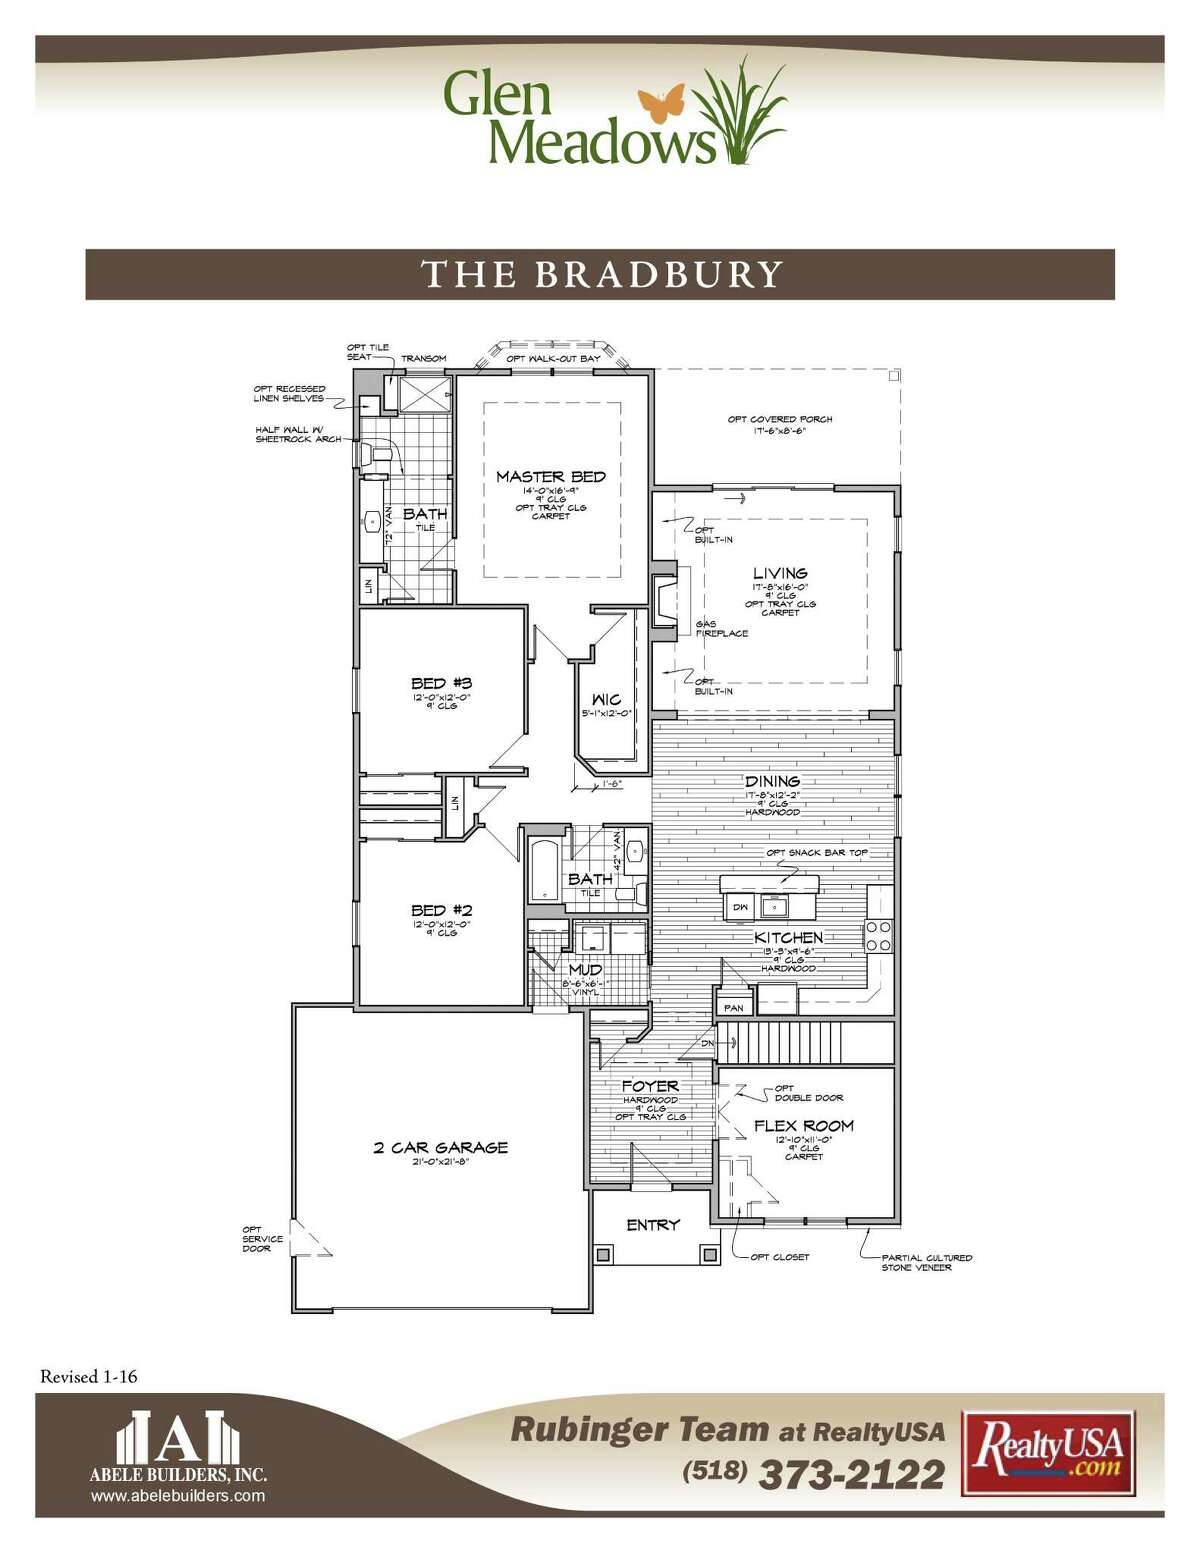 Floor plan for the home by Abele Builders in the 2016 Parade of Homes.